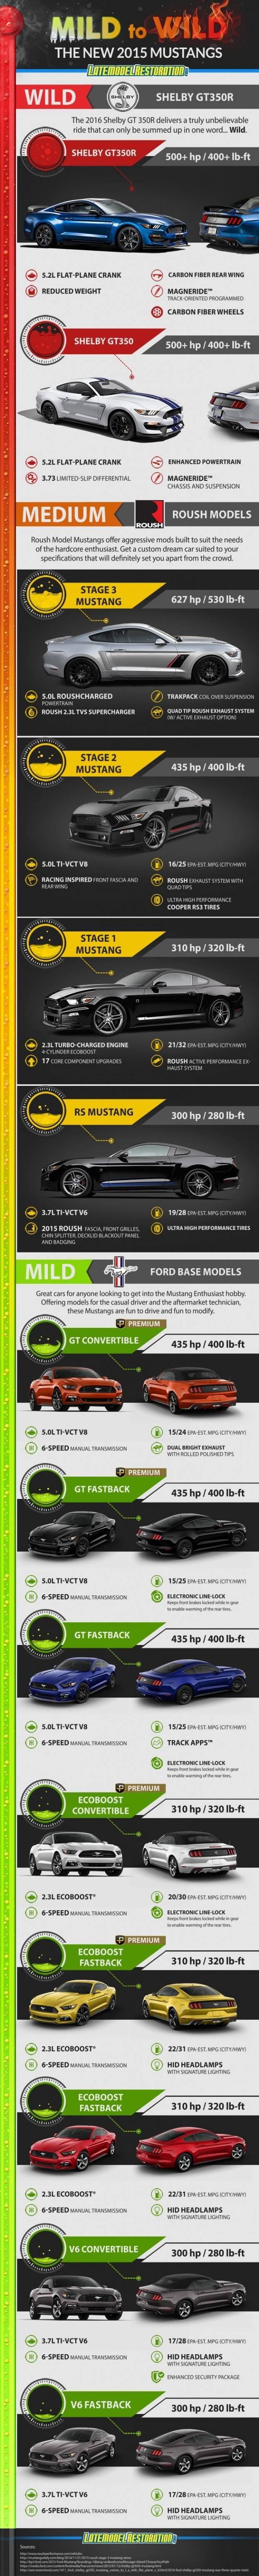 2015 Ford Mustang Infographic - Latemodel Restoration